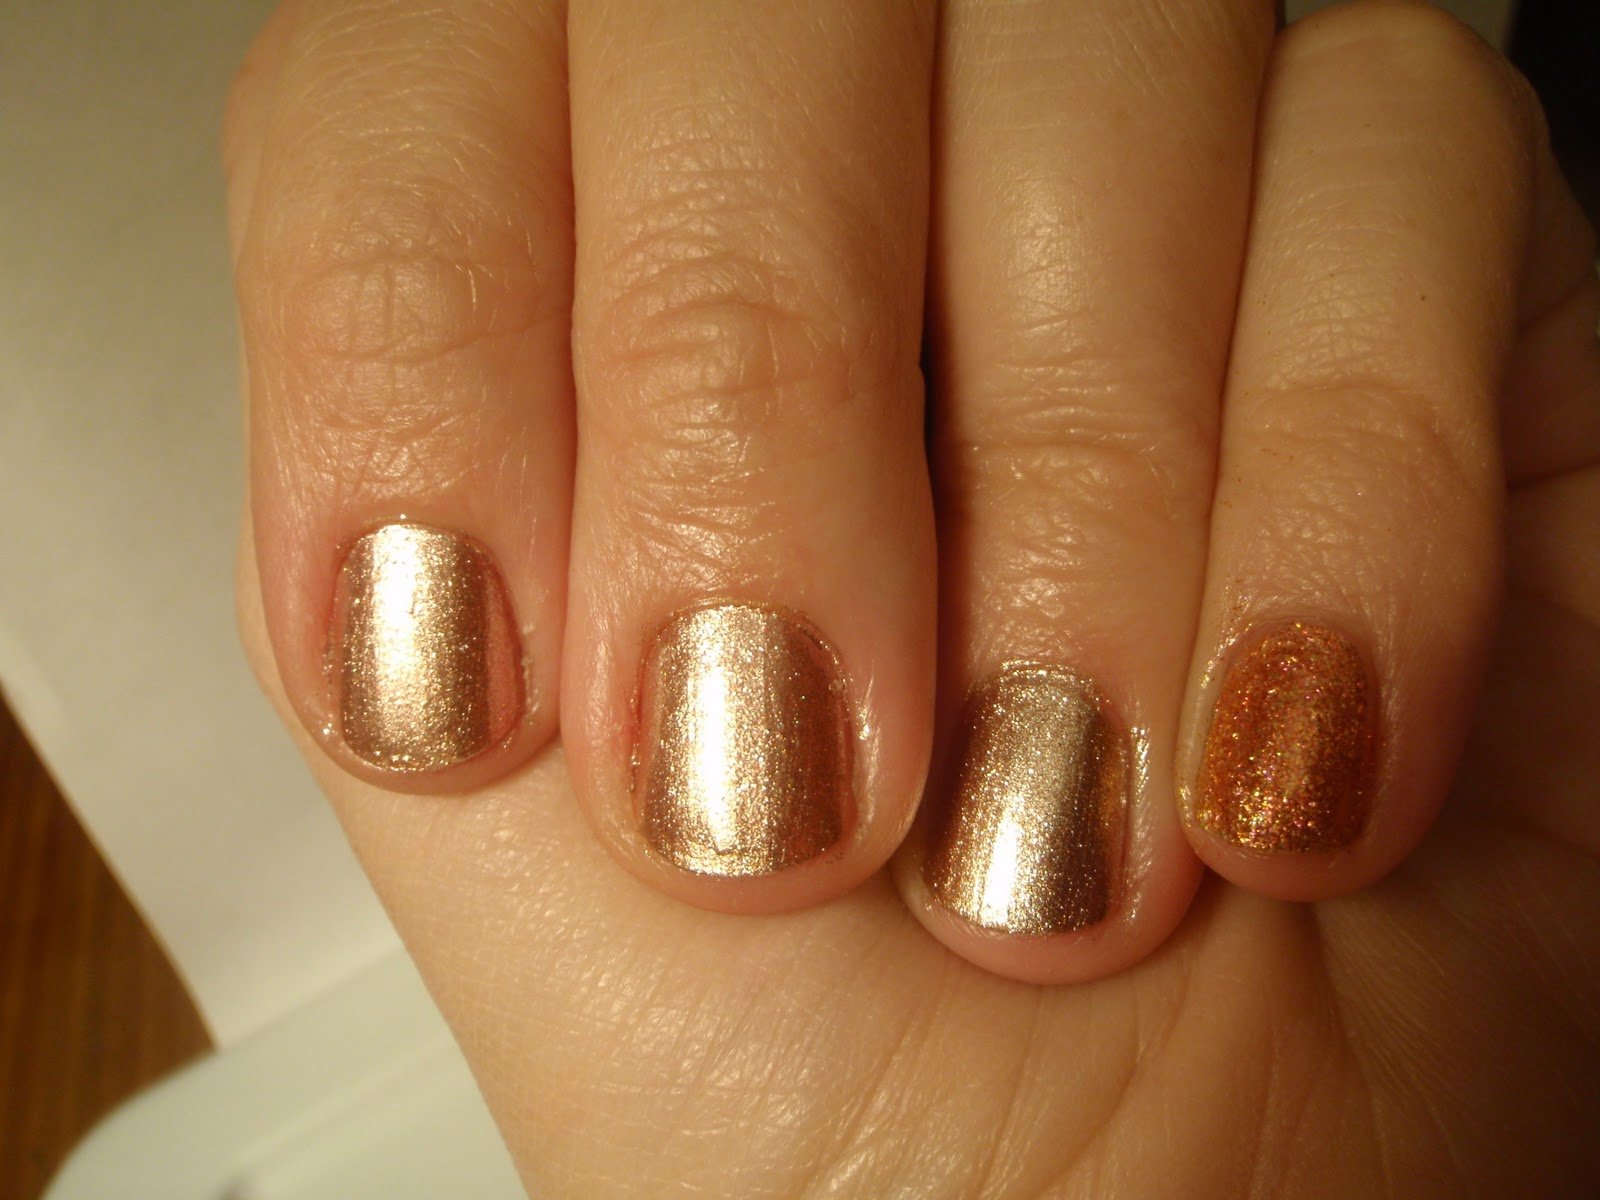 I swatch it, so you dont have to!: Army green nail polish